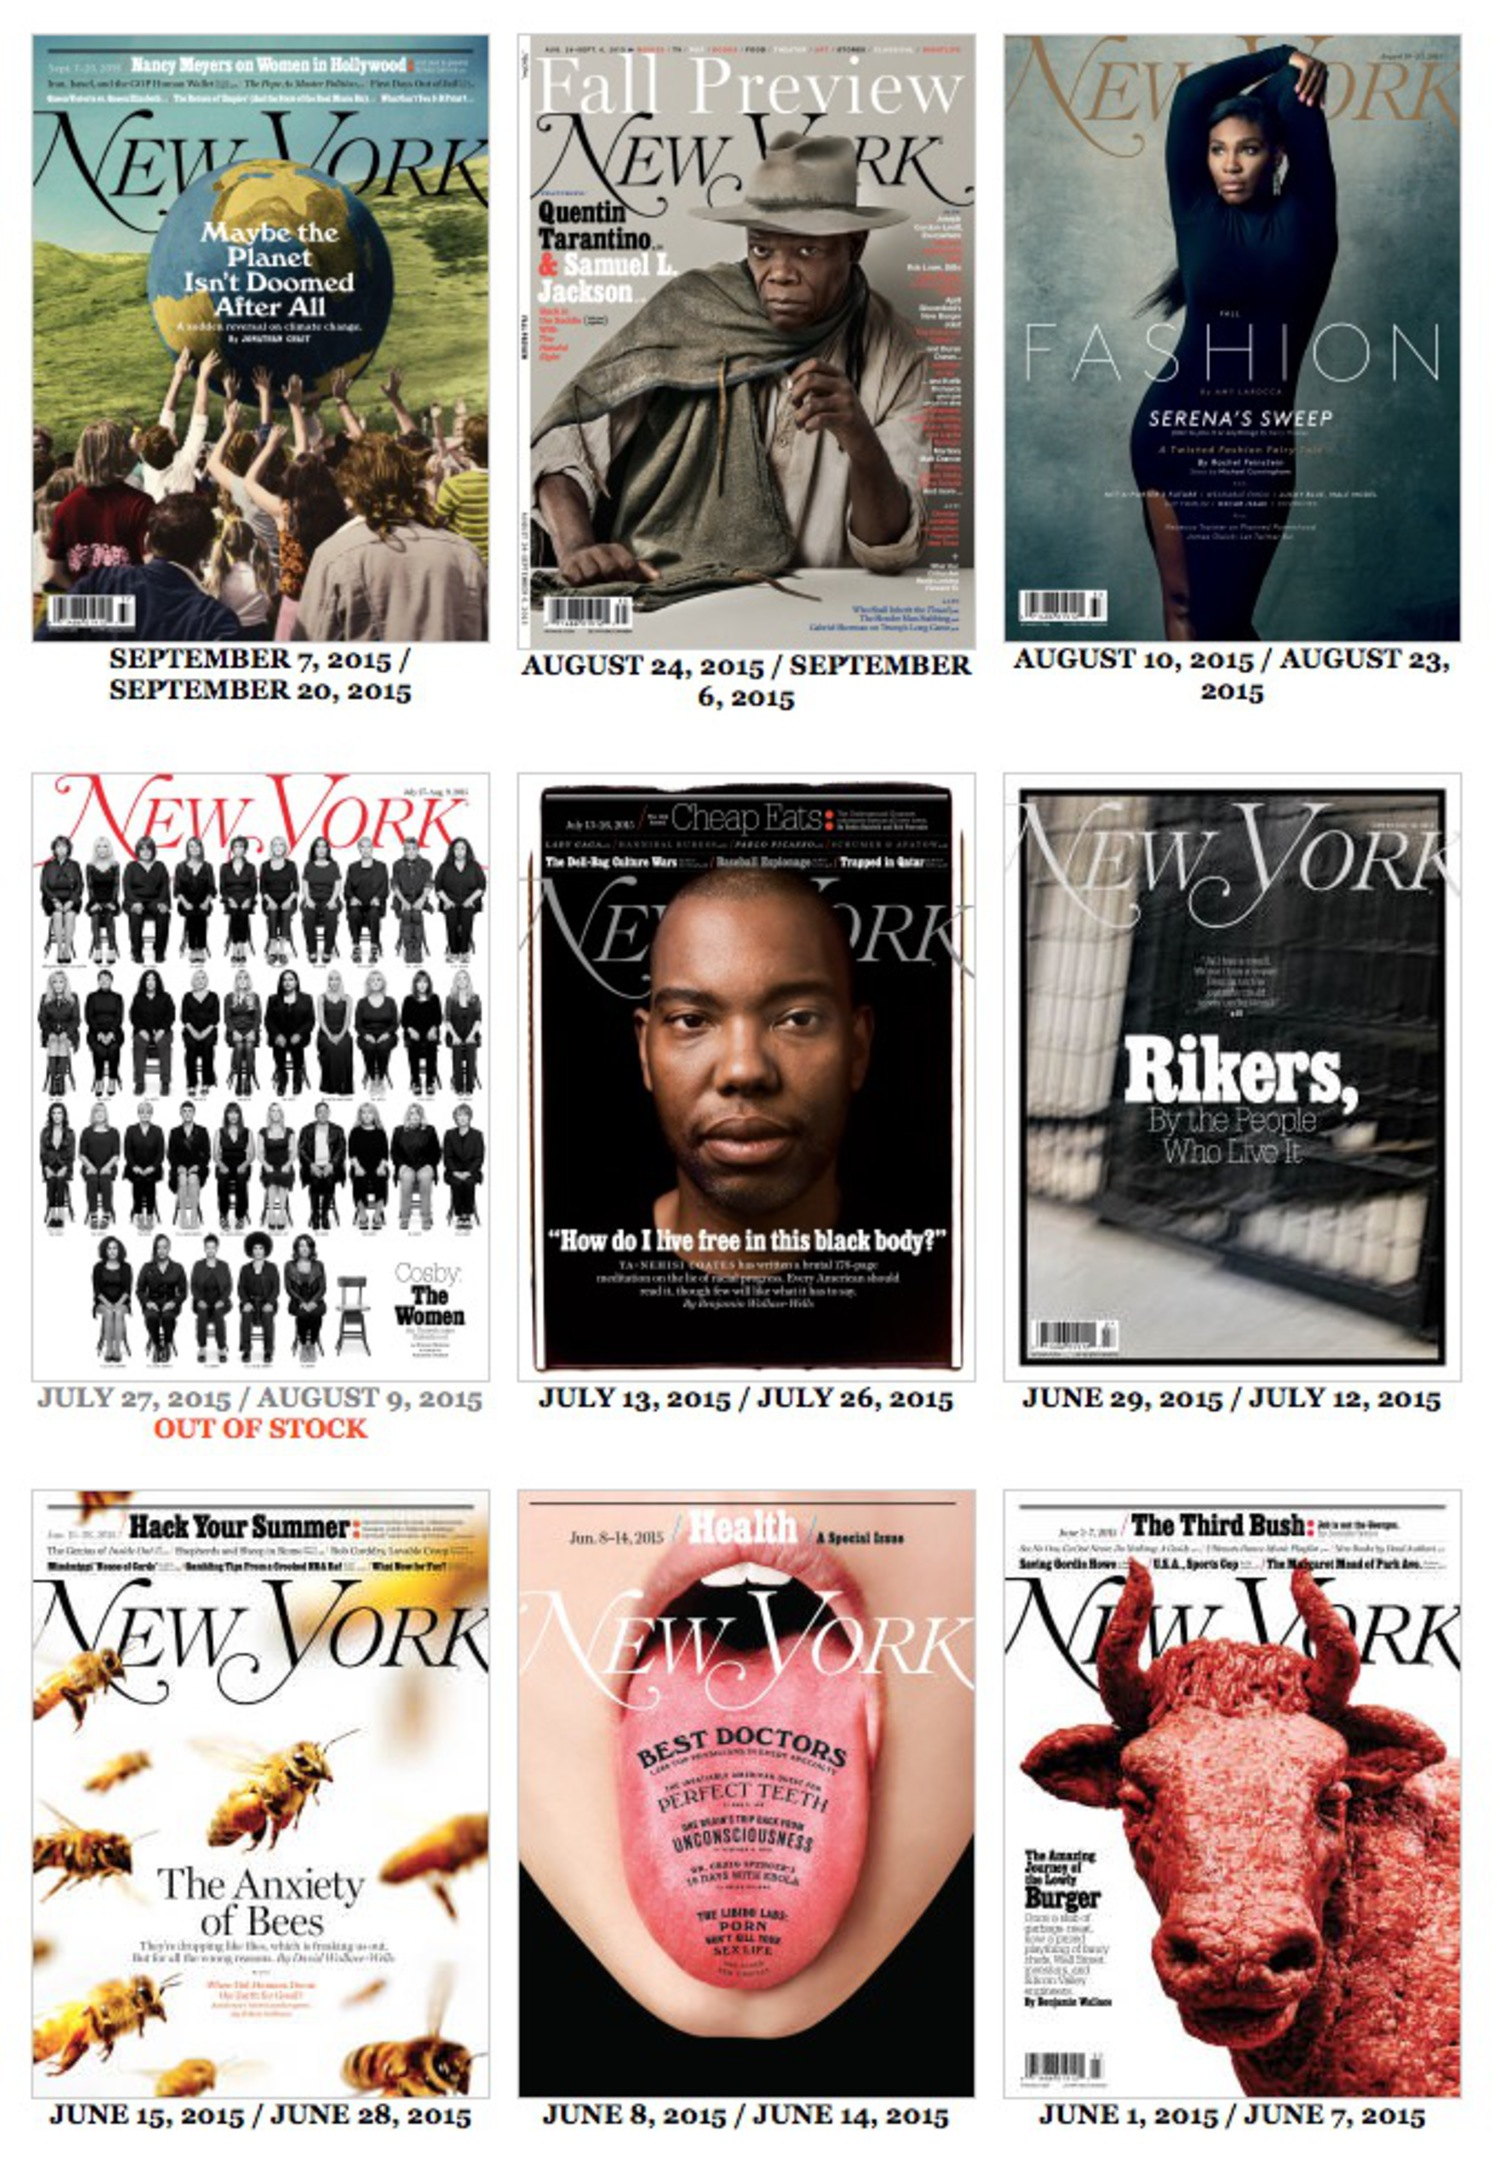 New Yorker Magazine | Subscribe to The New Yorker - tiospecicin.gqt Popular Magazines - From $ - See Whats Hot Today [more].